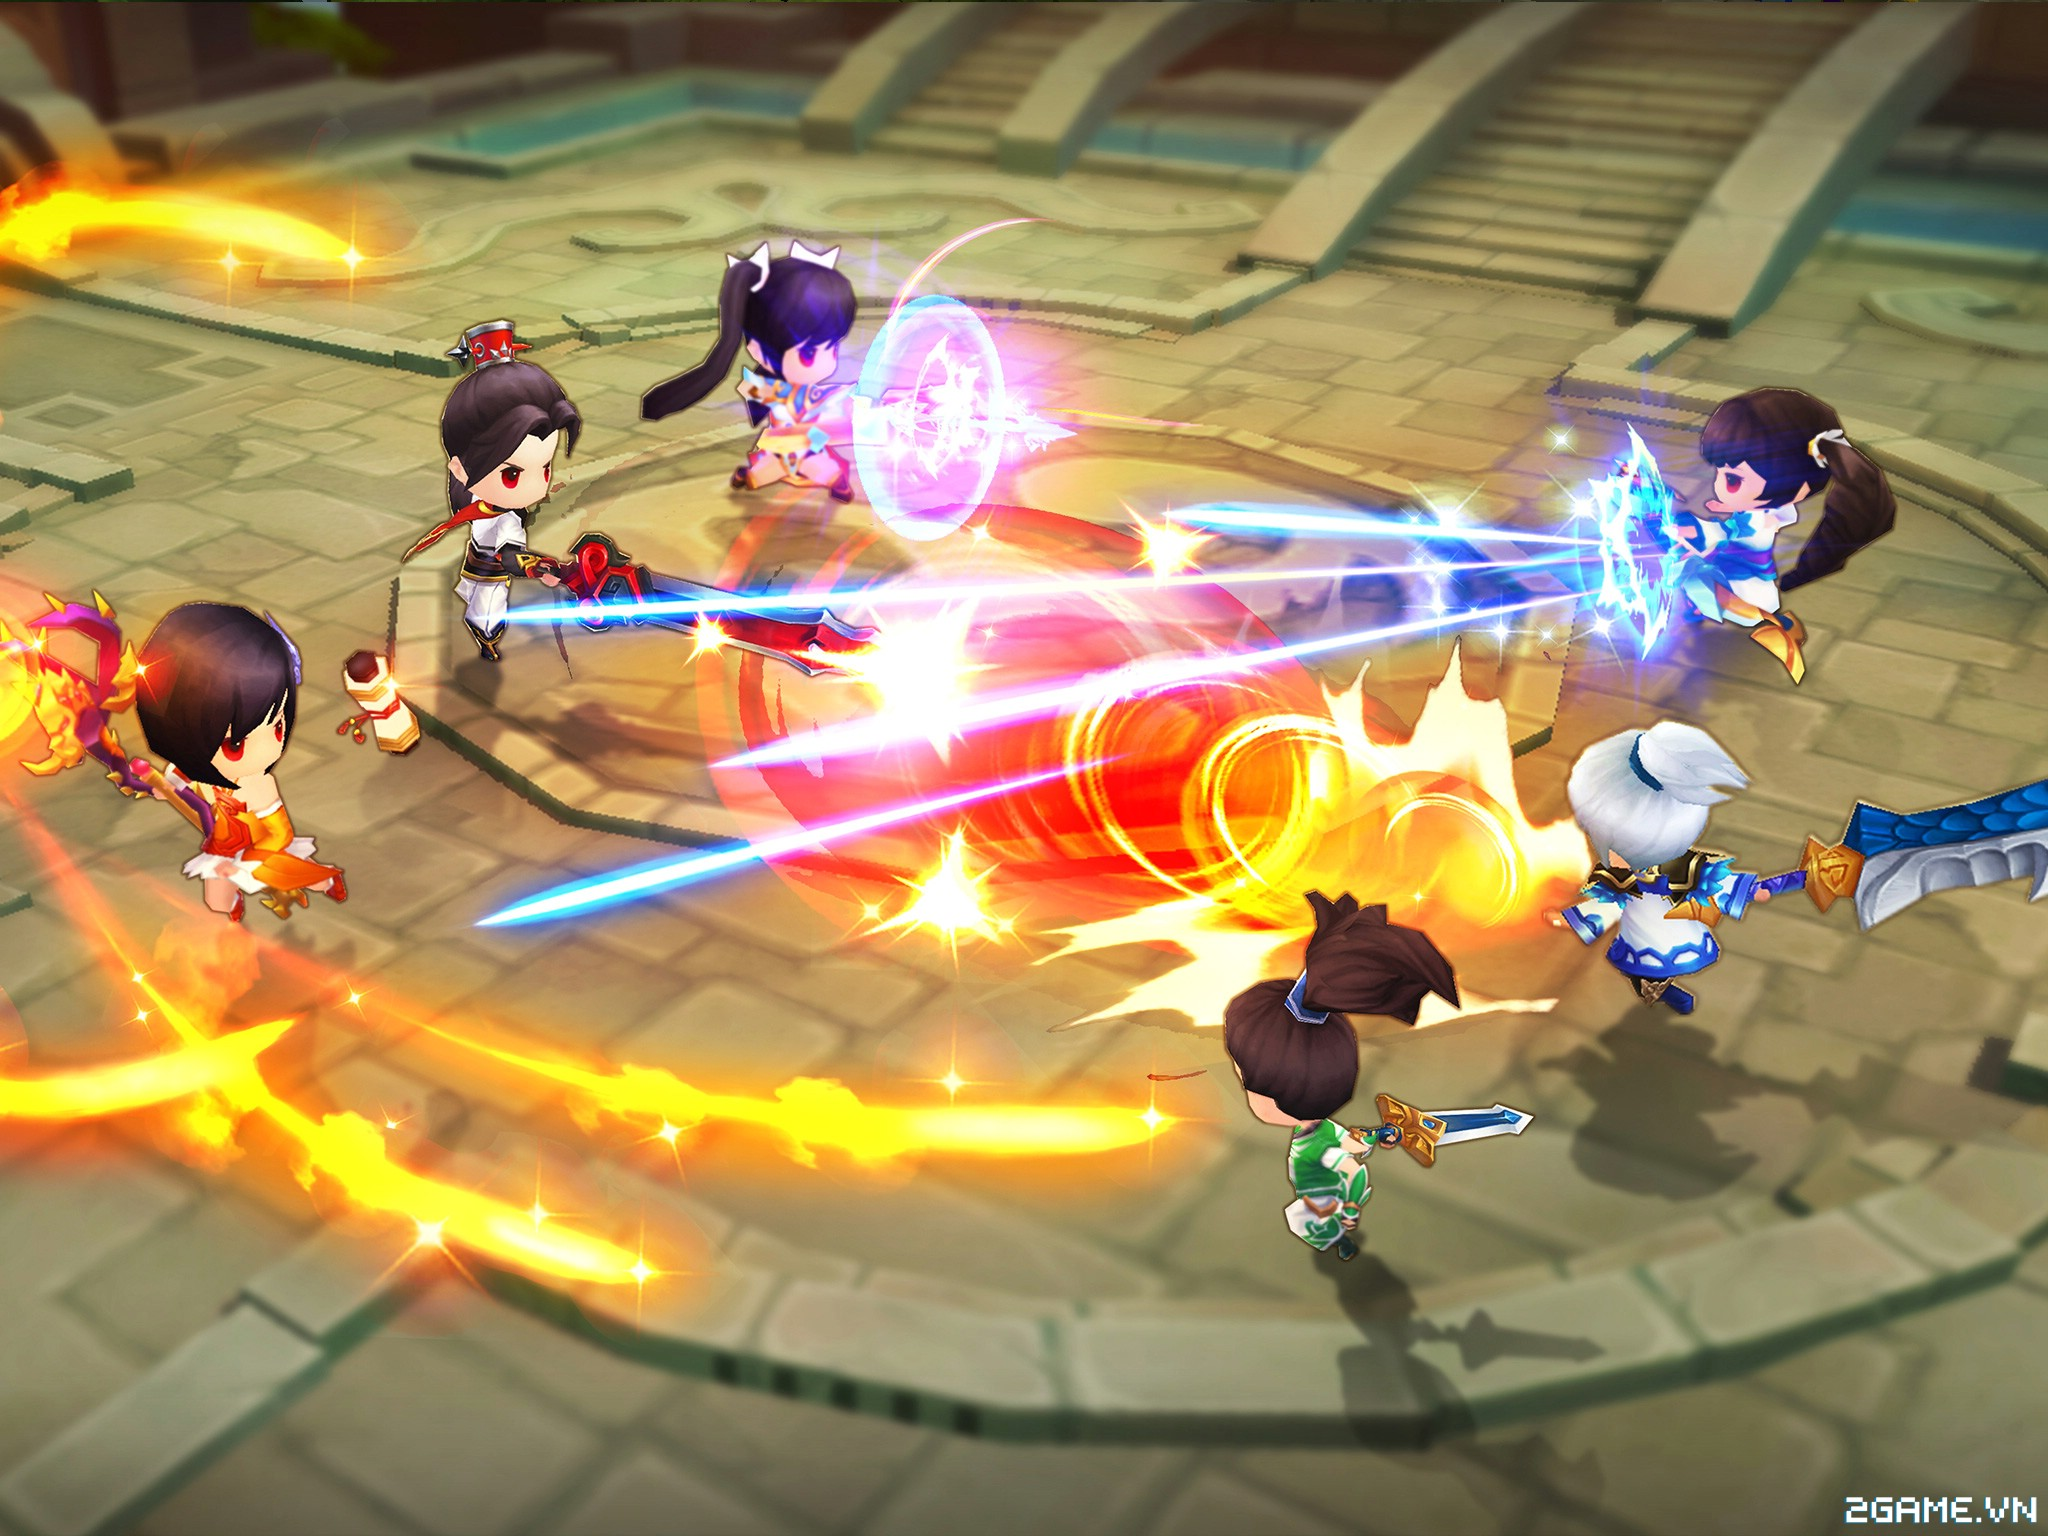 2game_thein_ha_mobile_anh_2s.jpg (2048×1536)